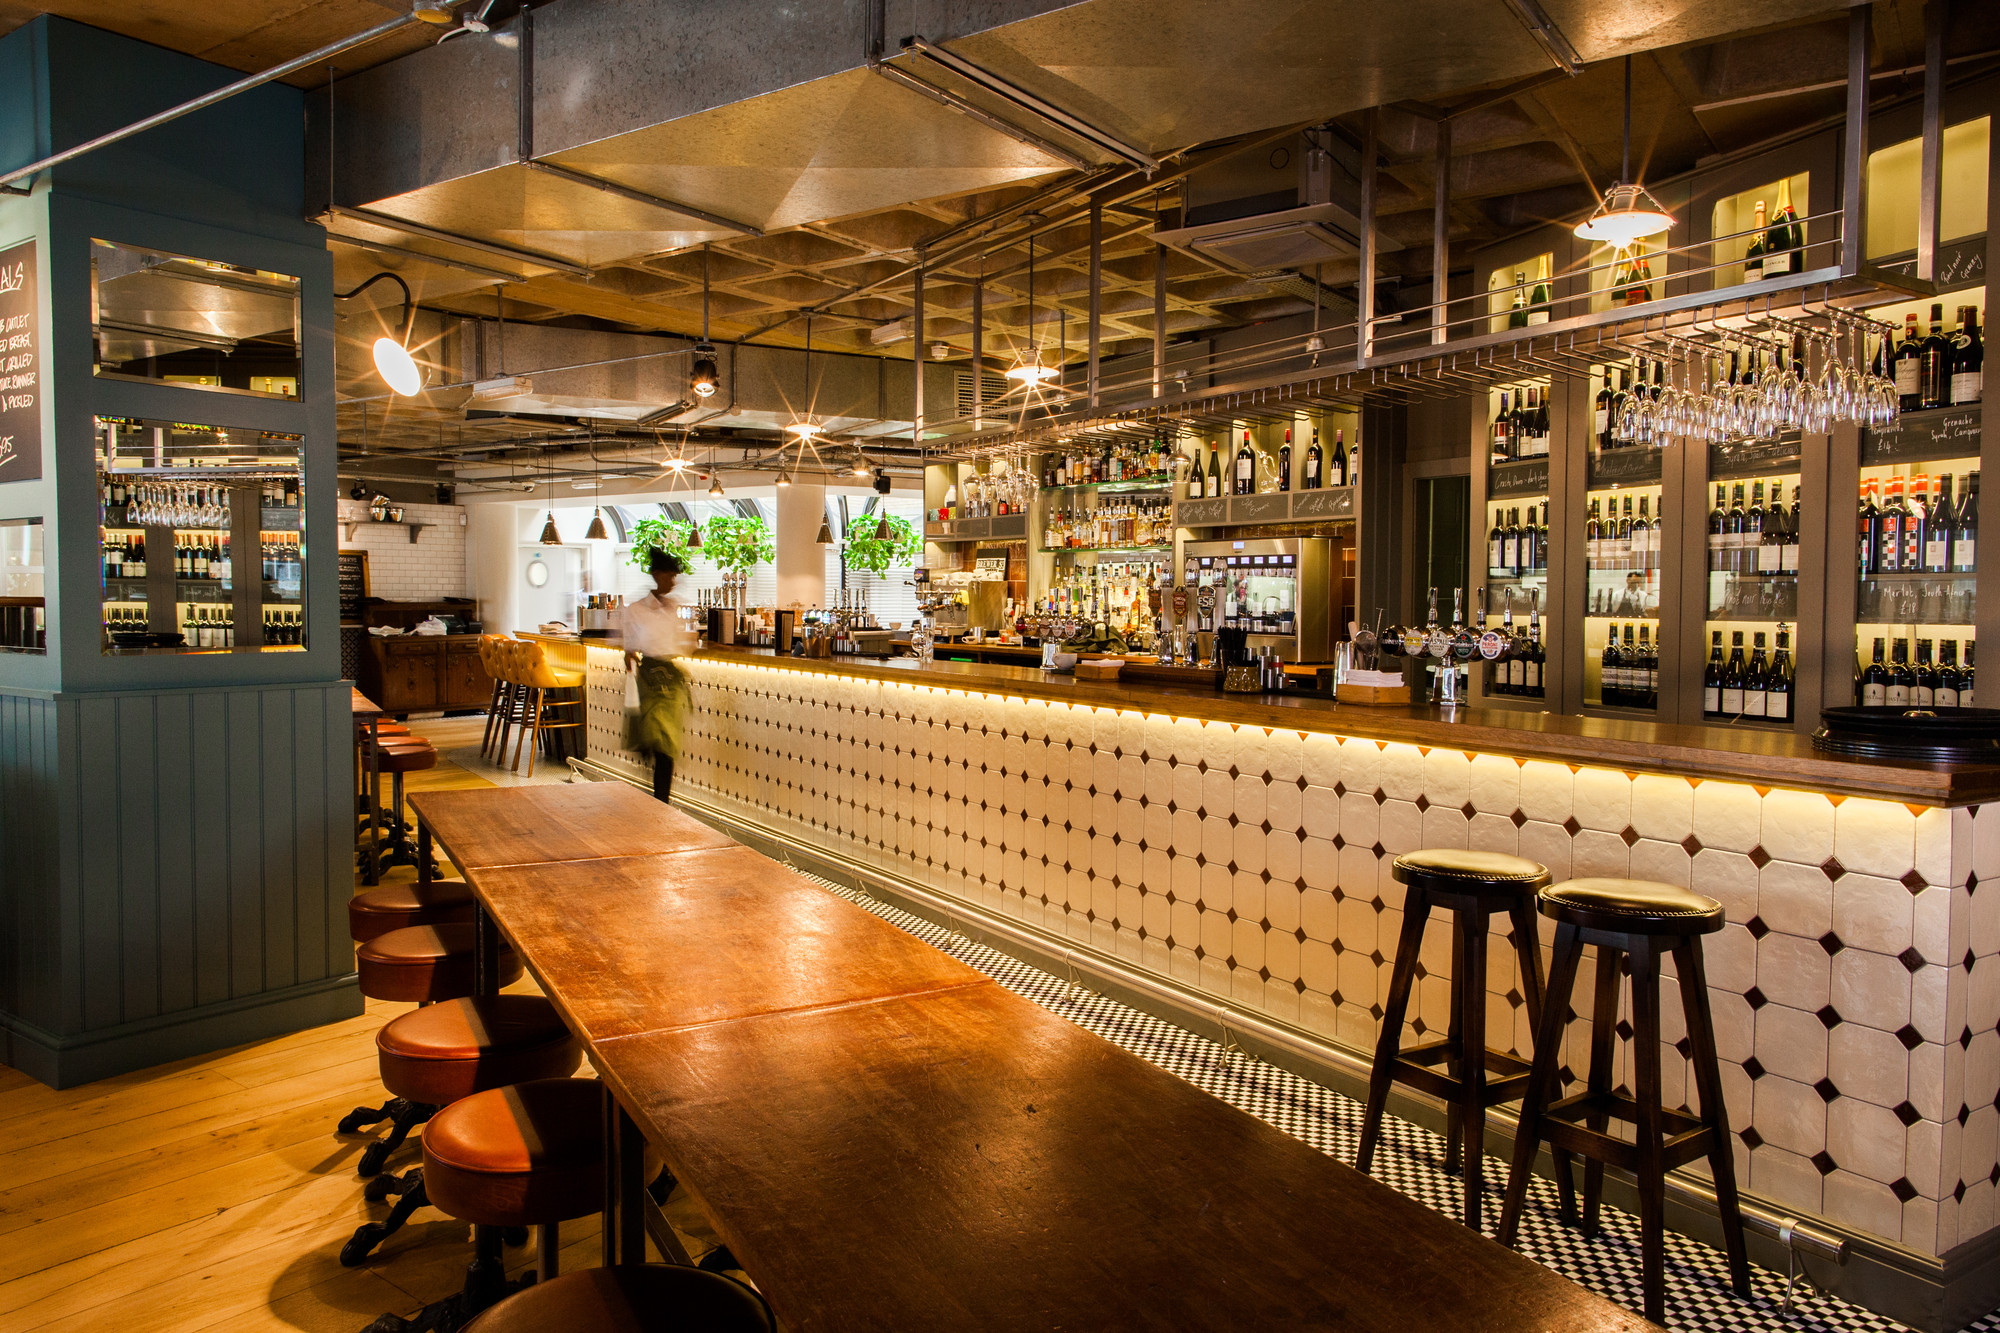 Ordinaire Multiple Bar/Club: The Vintry (London) / Harrison